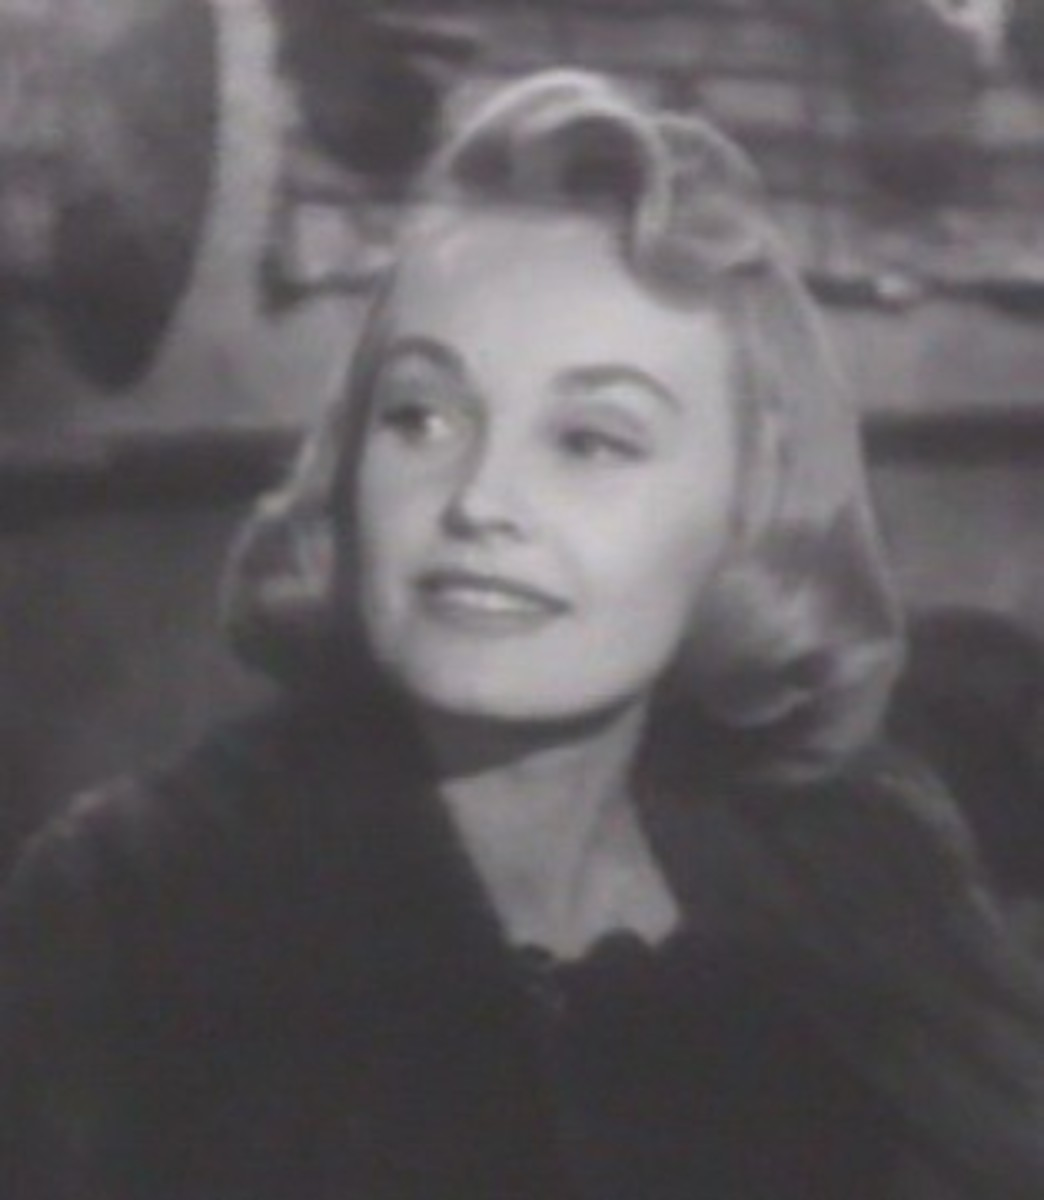 Here's Virginia Lee with hair that ends at her jaw, which would normally be a hair-don't for women with squarish jaws.  But two things save her: the sleek, soft look of the waves and the delicacy of her well-defined features.